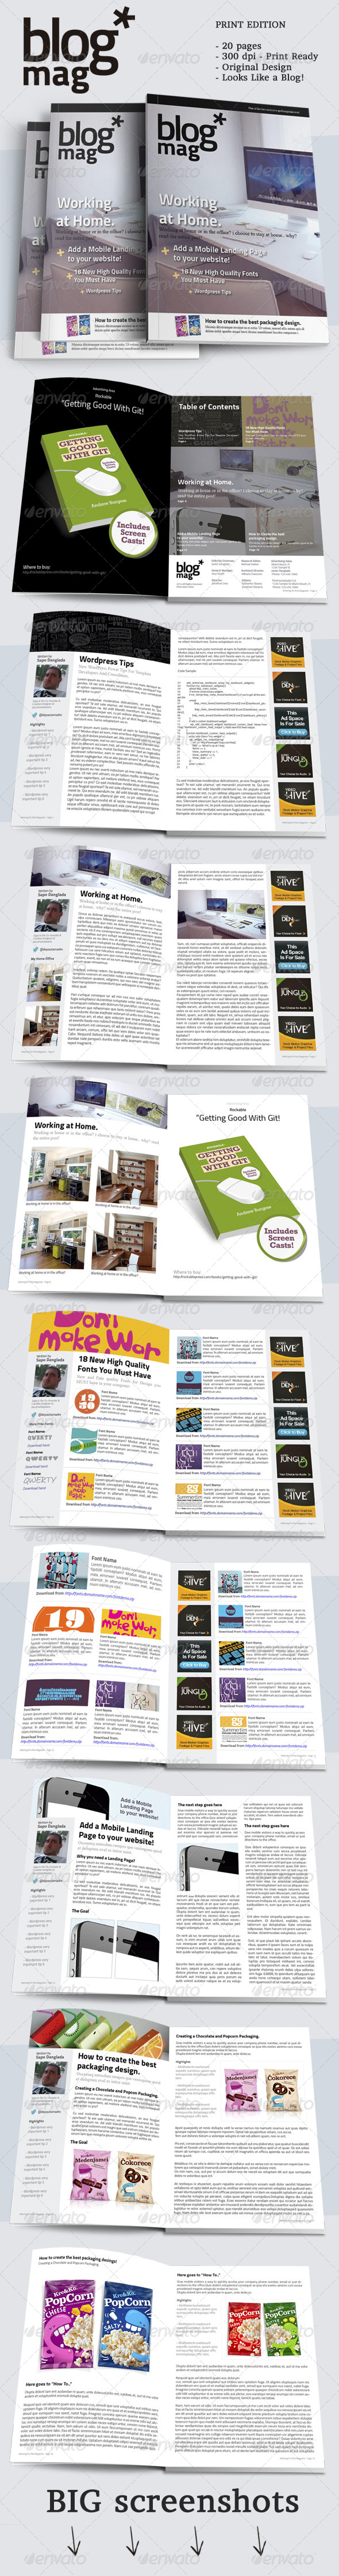 GraphicRiver BlogMag Print Magazine that Looks Like a Blog 6754558